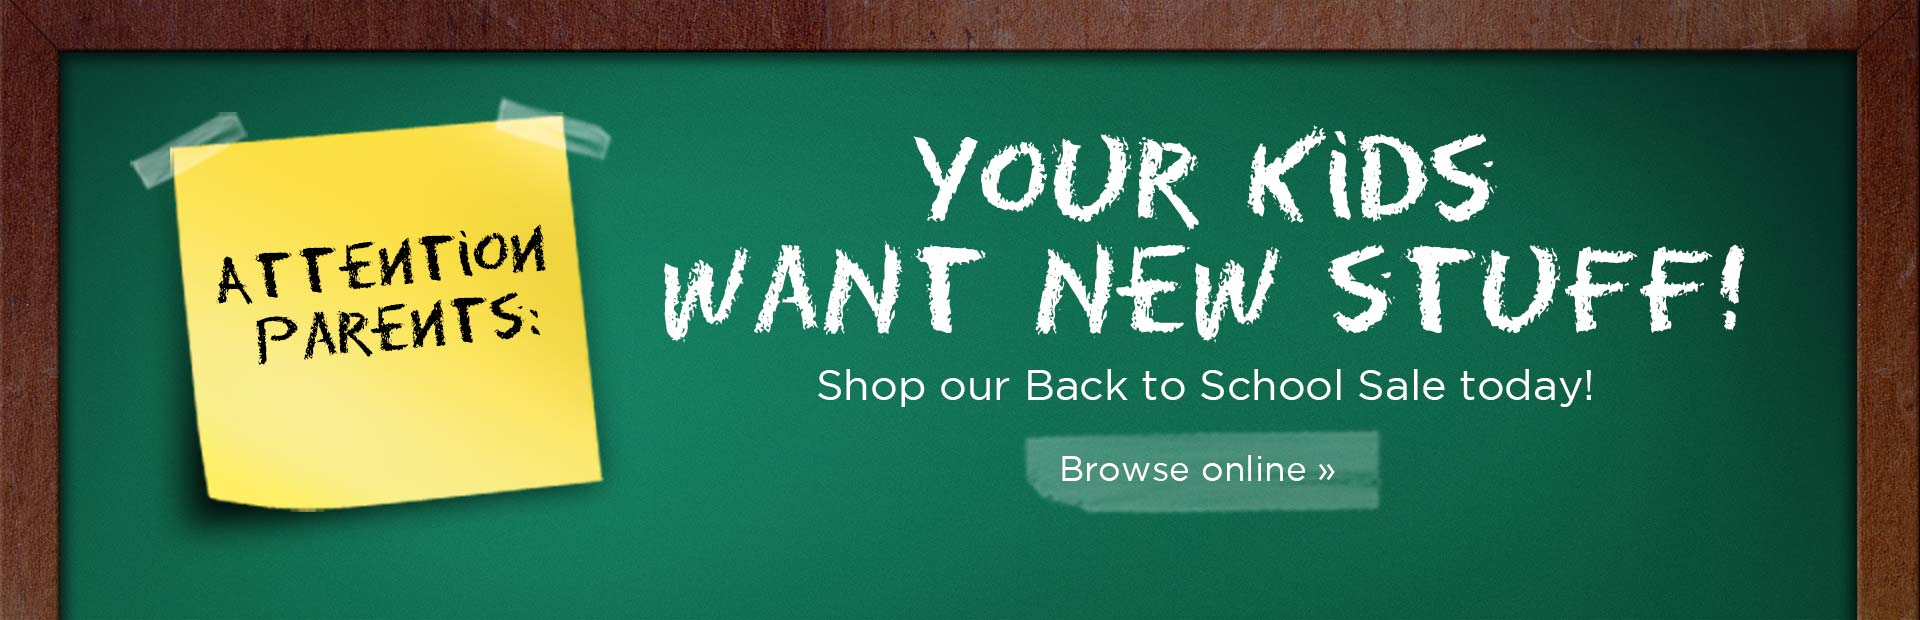 Shop our Back to School Sale today! Click here to browse online.